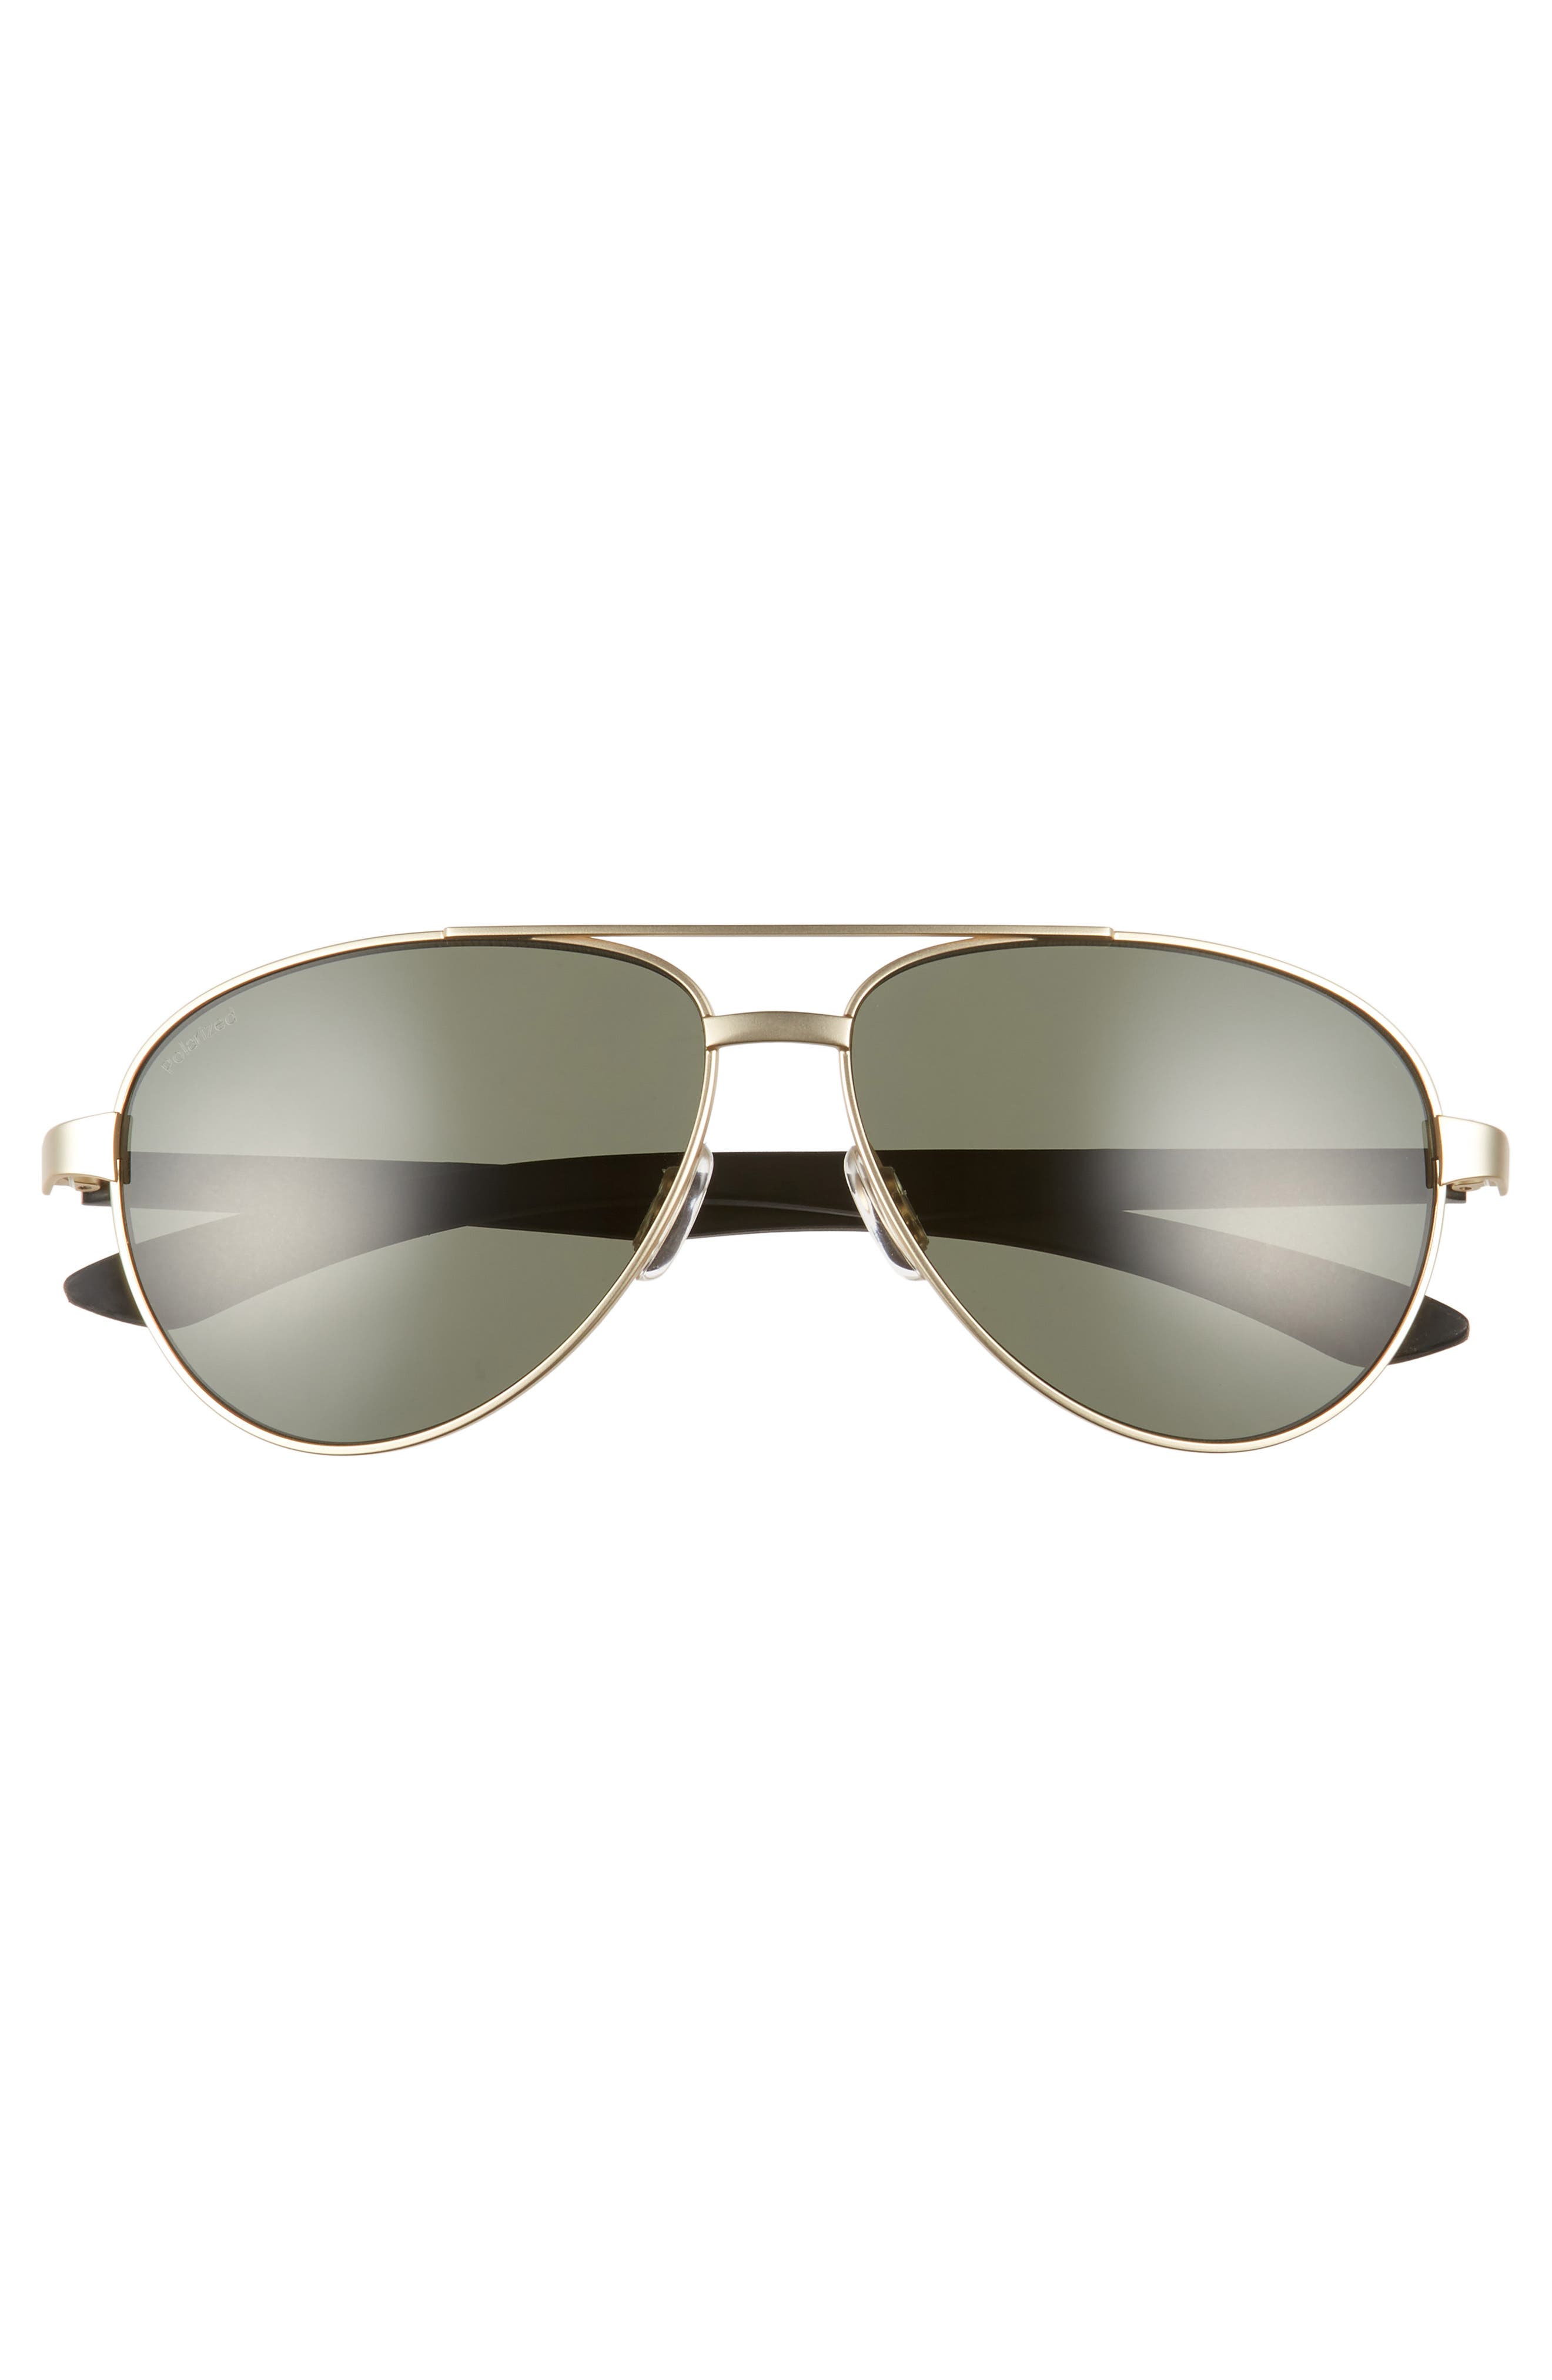 Salute 59mm Polarized Aviator Sunglasses,                             Alternate thumbnail 3, color,                             Matte Gold